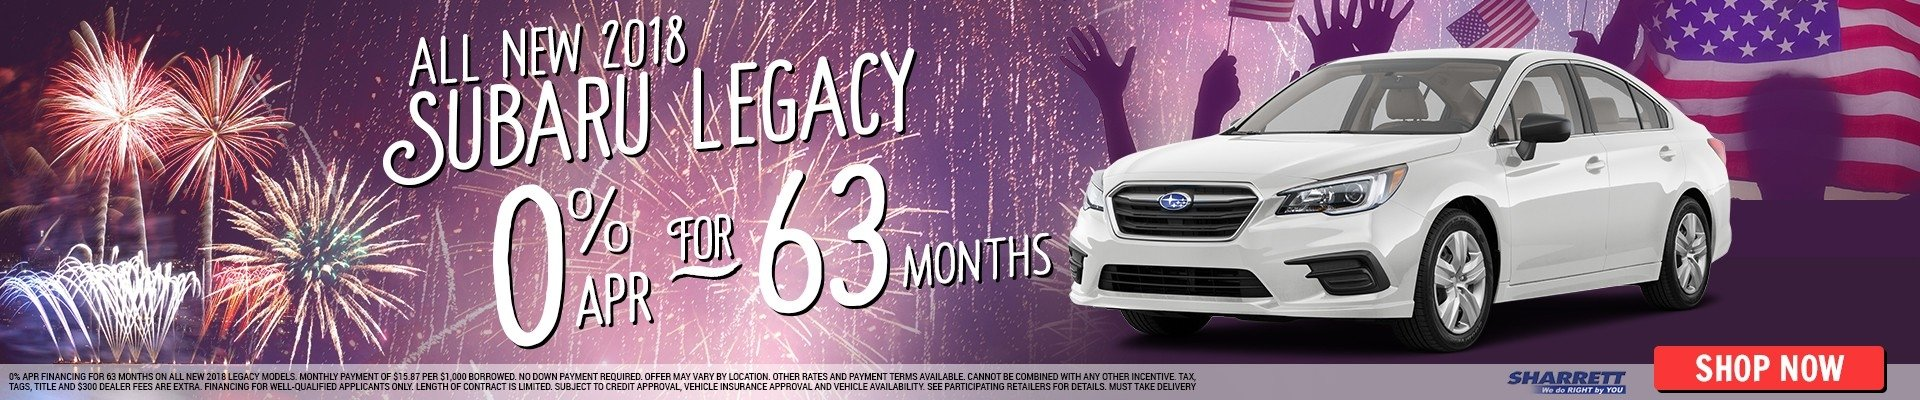 Get 0% APR for 63 months on a New 2018 Subaru Legacy